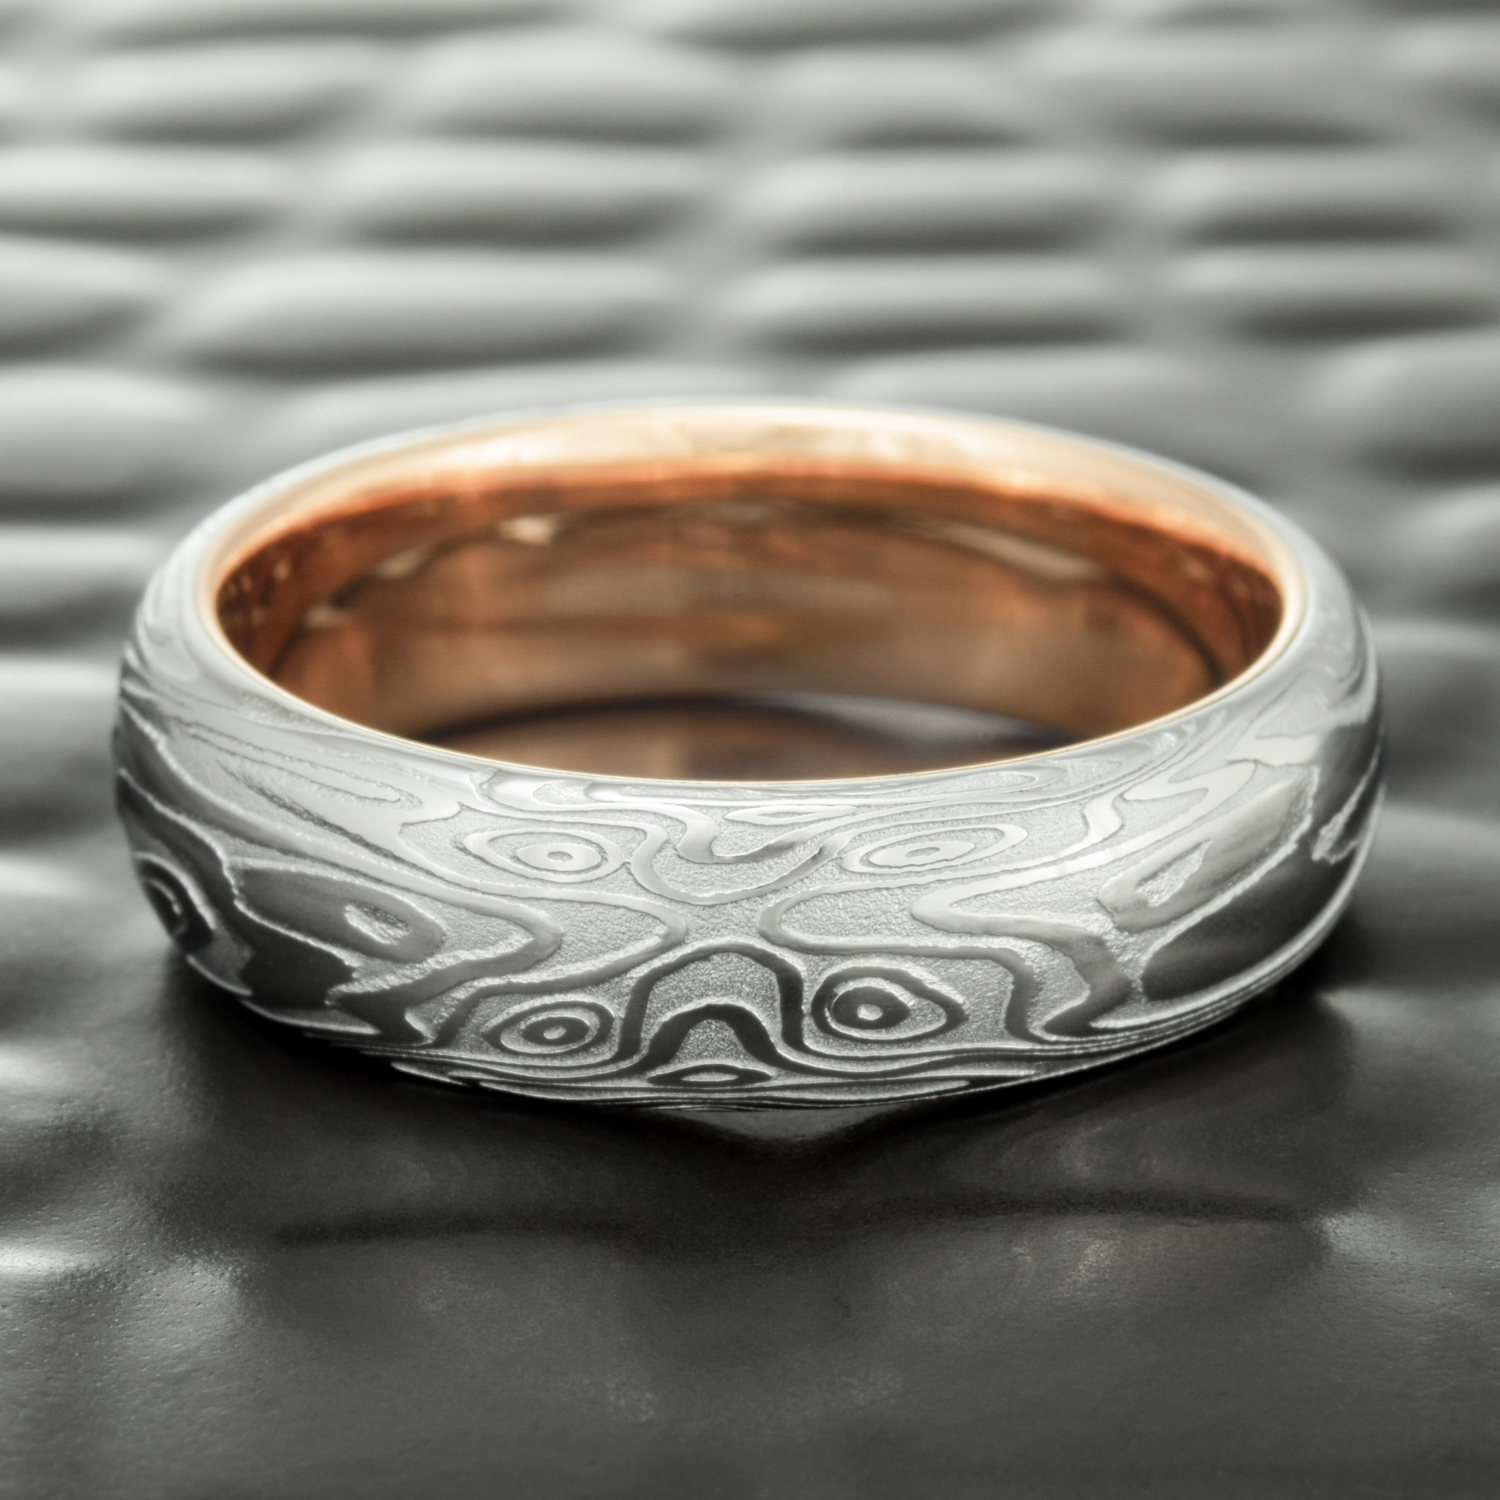 liner add a precious metal liner to any damascus steel or titanium mokume band - Damascus Wedding Ring